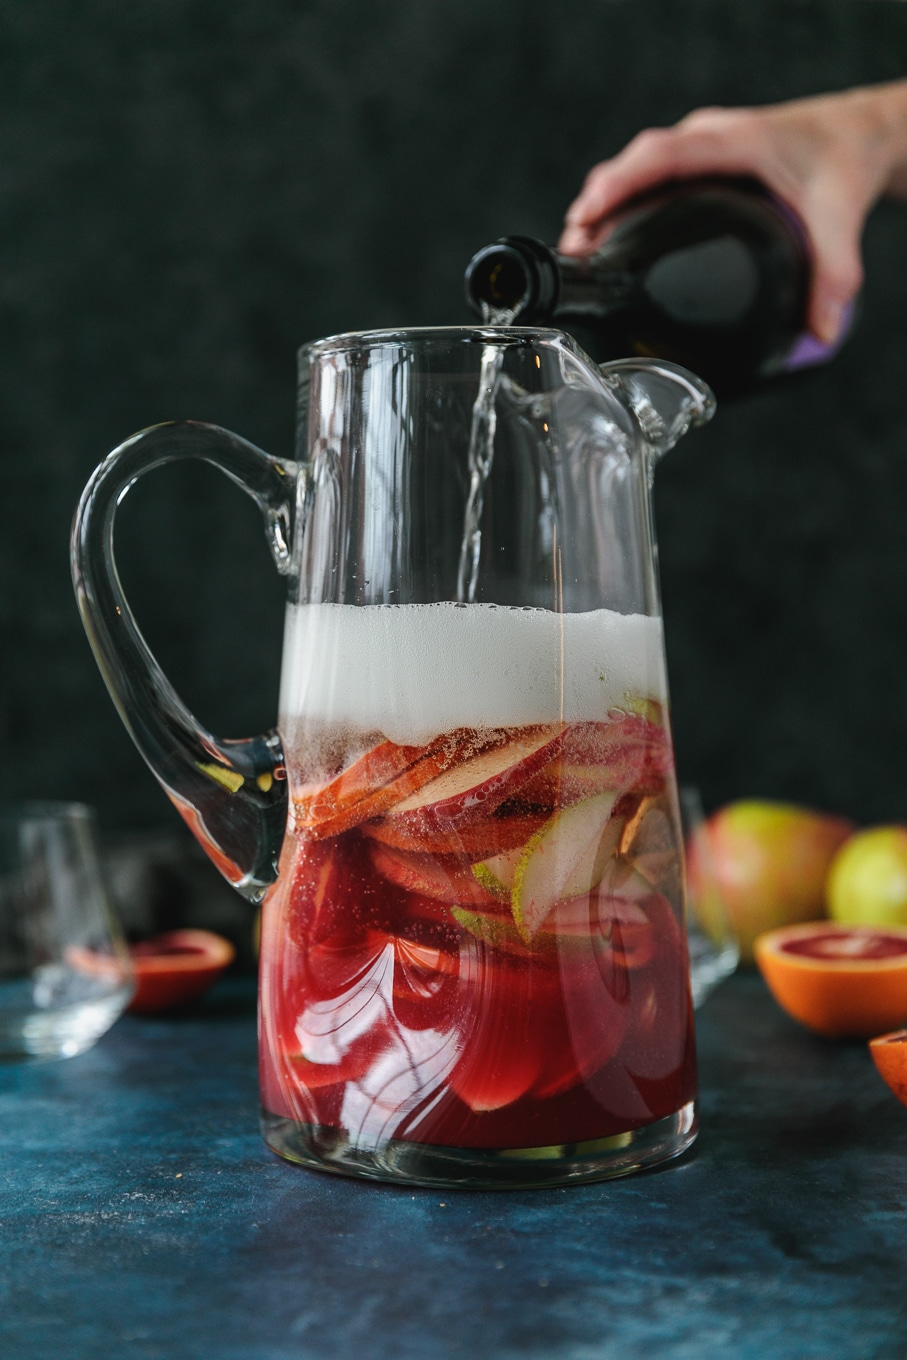 Forward facing shot of a pitcher filled with pink sparkling blood orange sangria filled with sliced apples, pears, and blood oranges with a bottle of champagne being poured into it